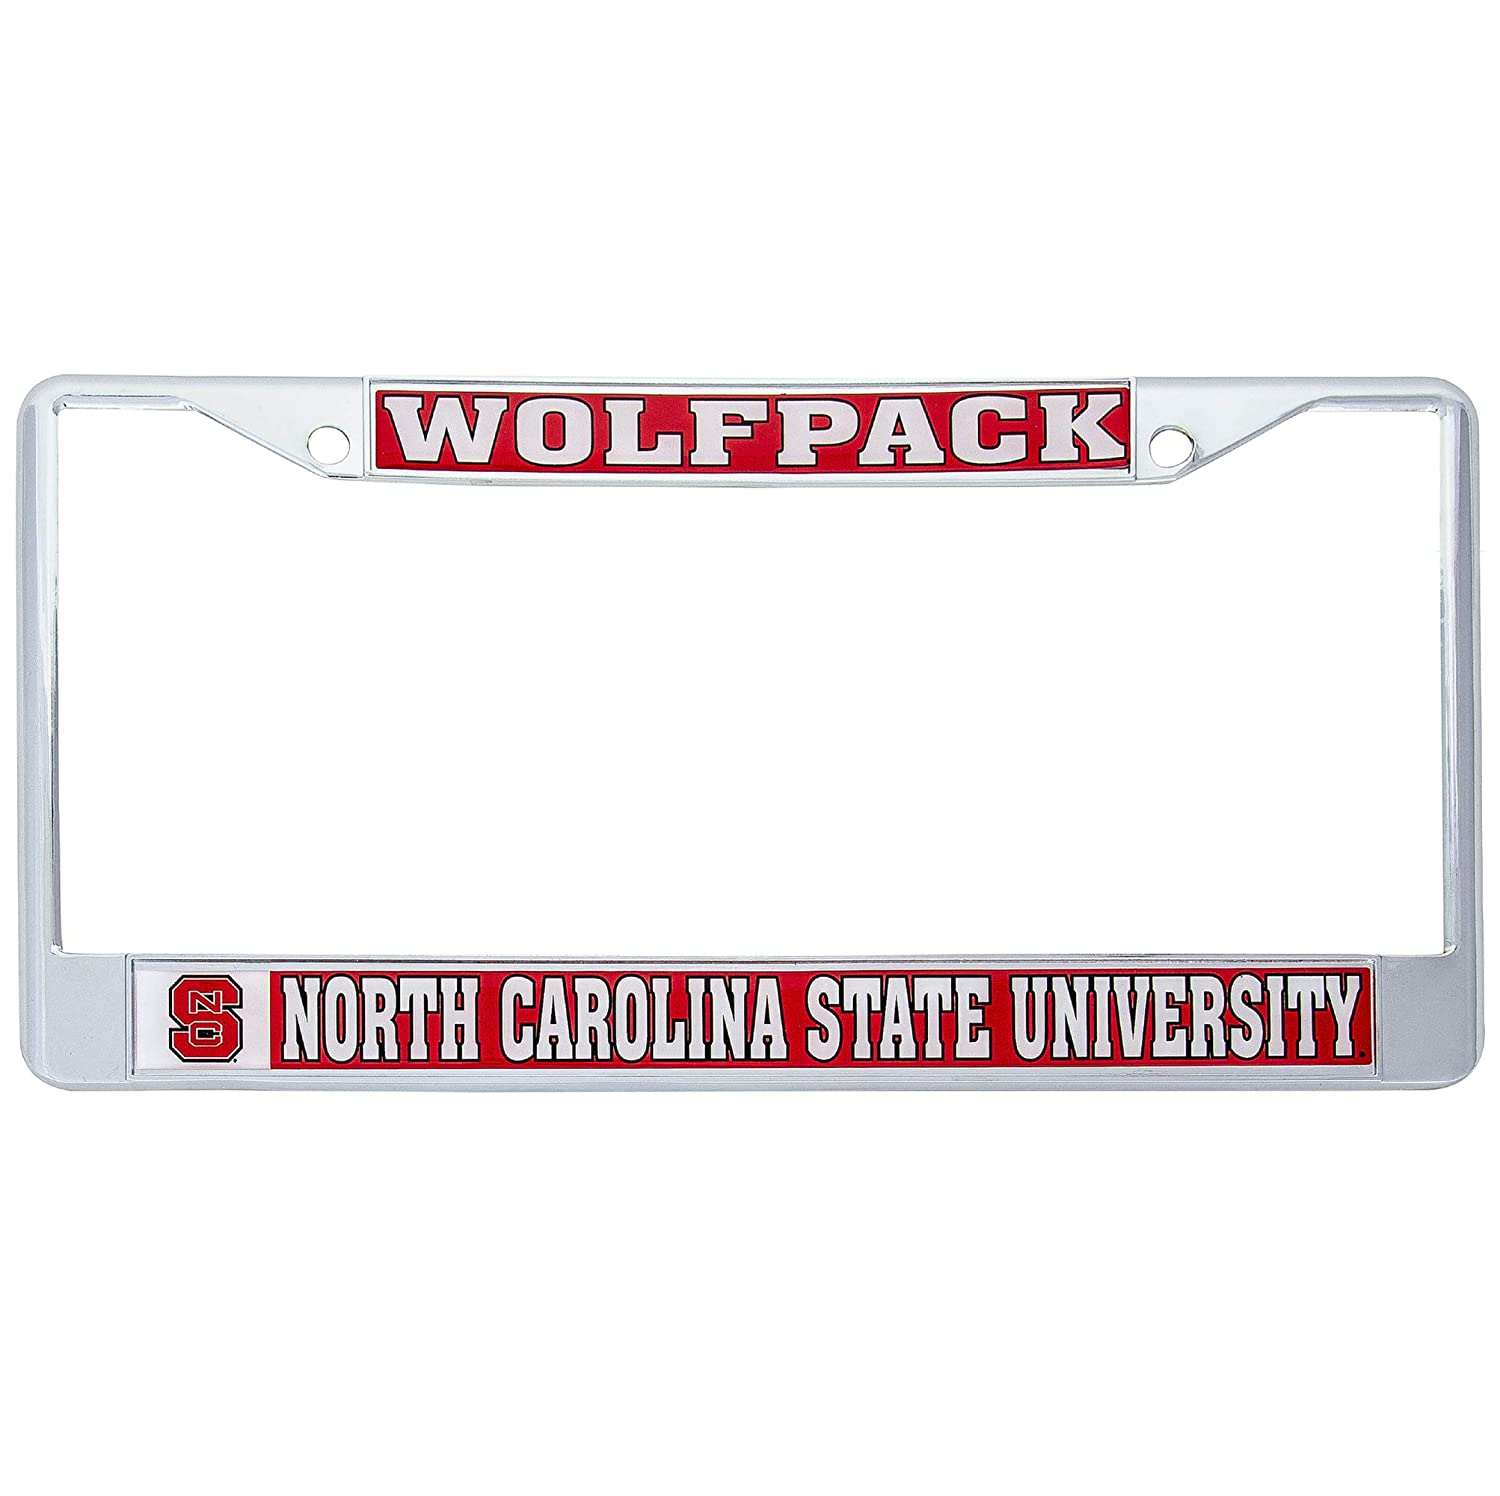 Desert Cactus North Carolina State University Wolfpack Metal License Plate Frame for Front Back of Car Officially Licensed Mascot